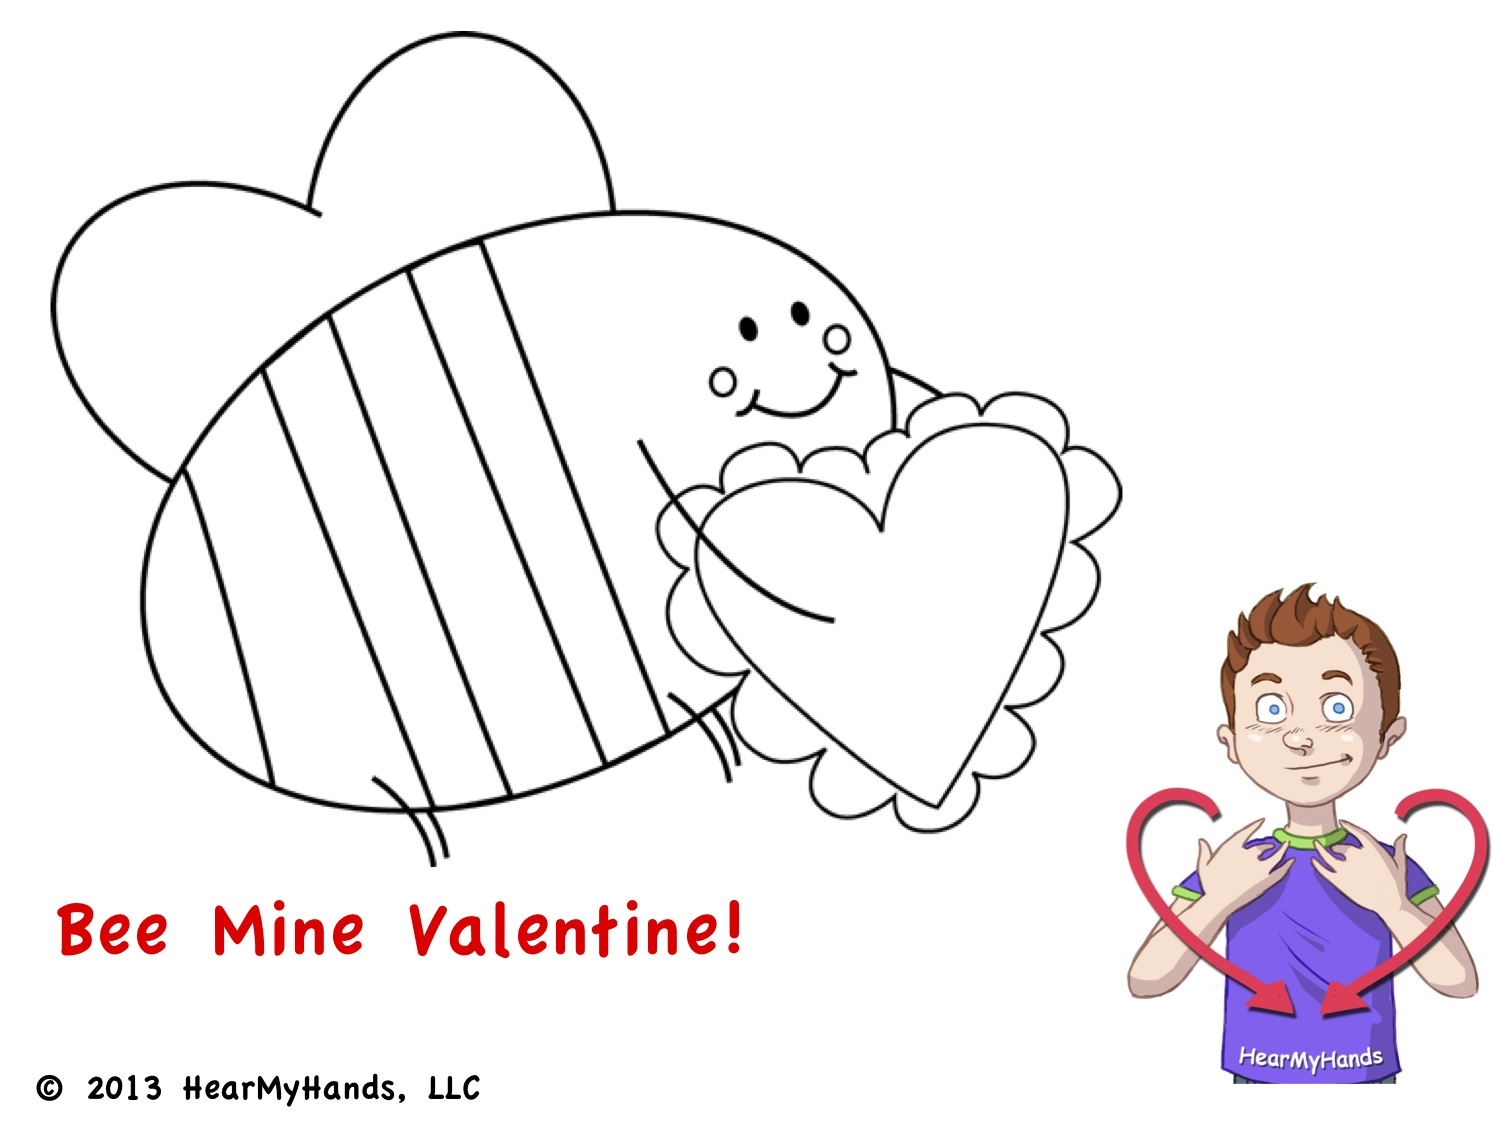 hearmyhands asl: sign: valentines. we created a free valentine's